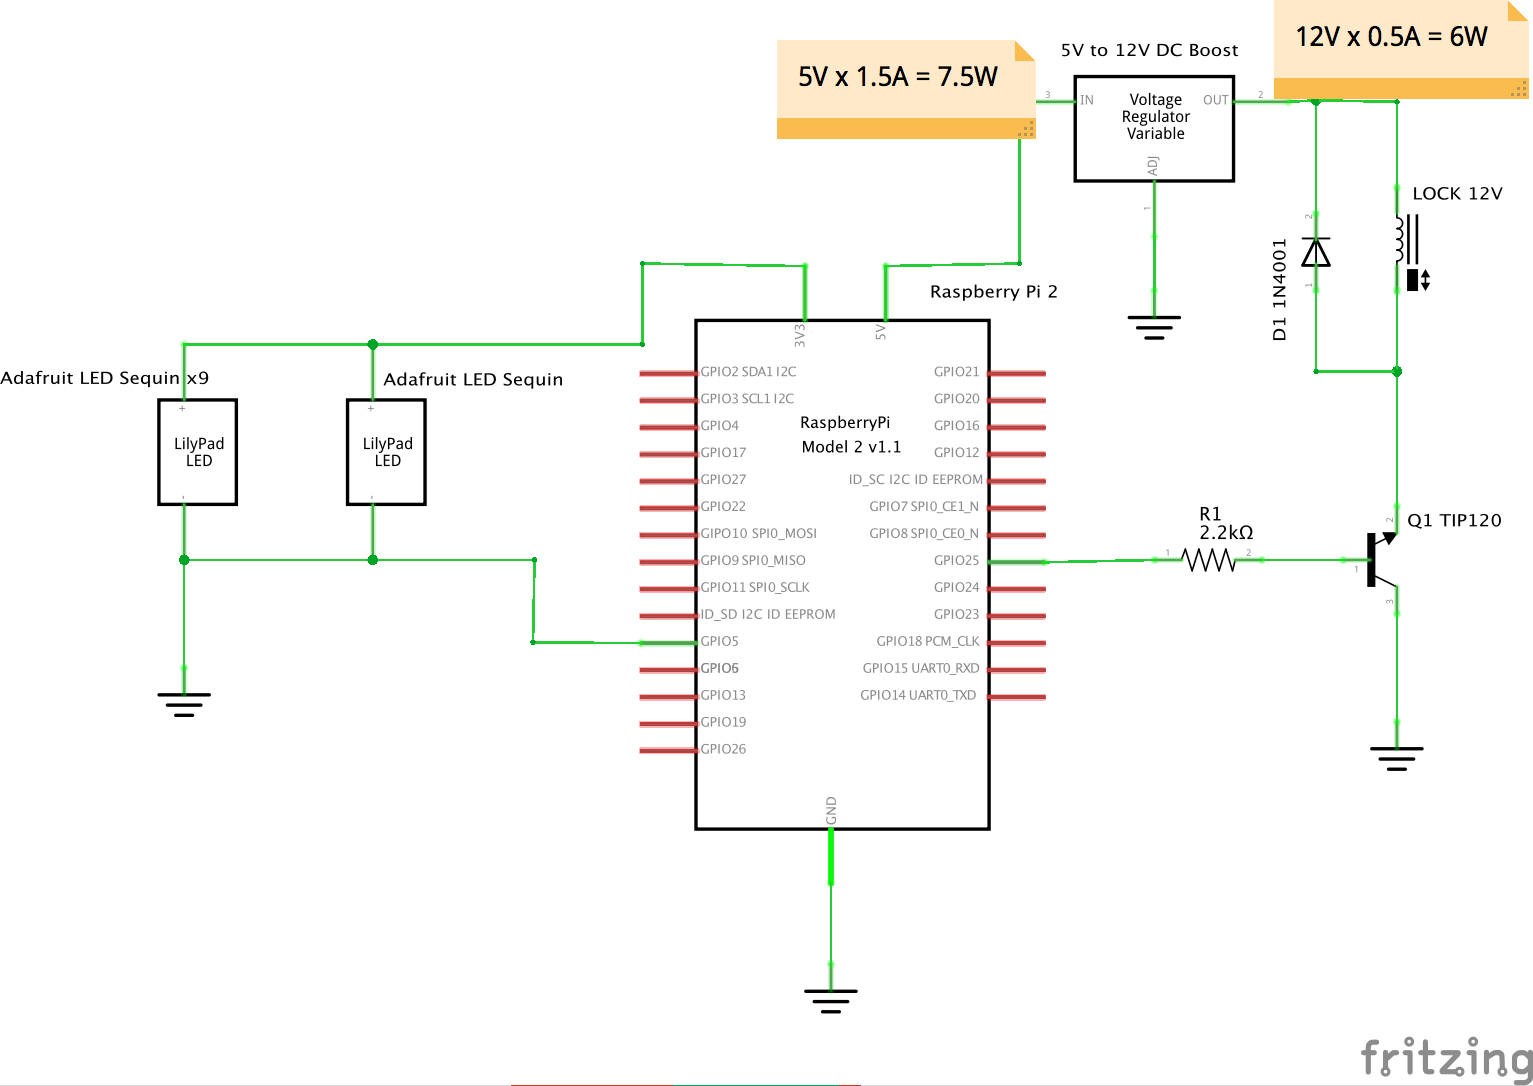 Pi 2 Is My Wiring Diagram Correct For Raspberry Pi Powering LEDs